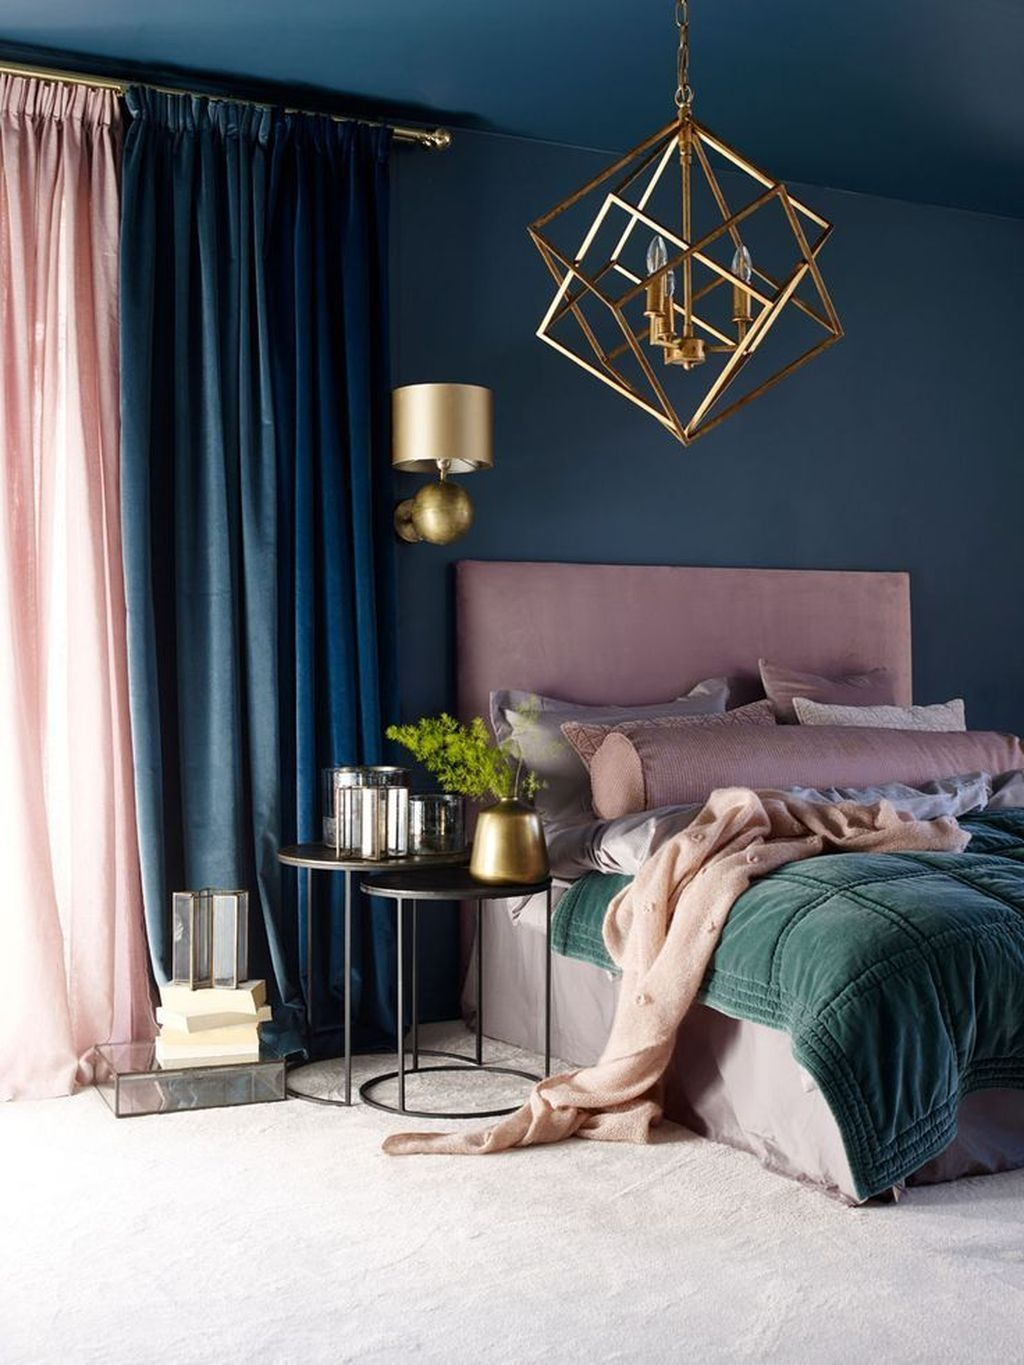 20 Fascinating Bedroom Decorating Ideas With Roses With Images